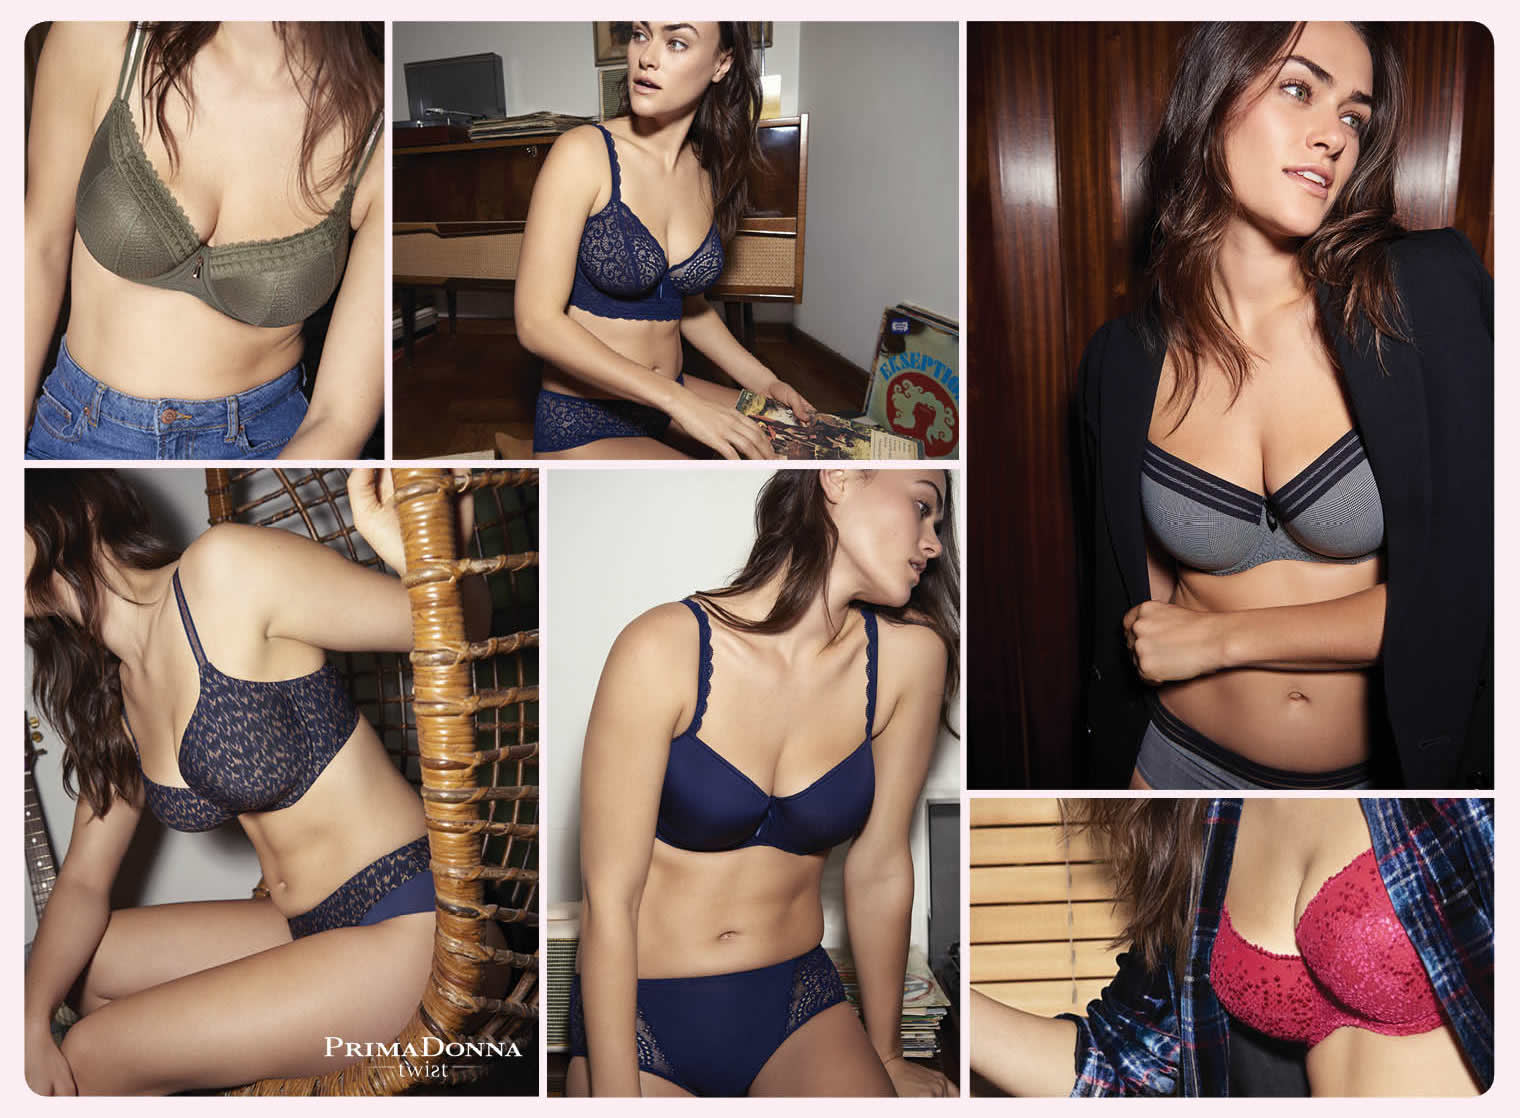 Prima Donna Winter Twist 2019 La Kemme Lingerie